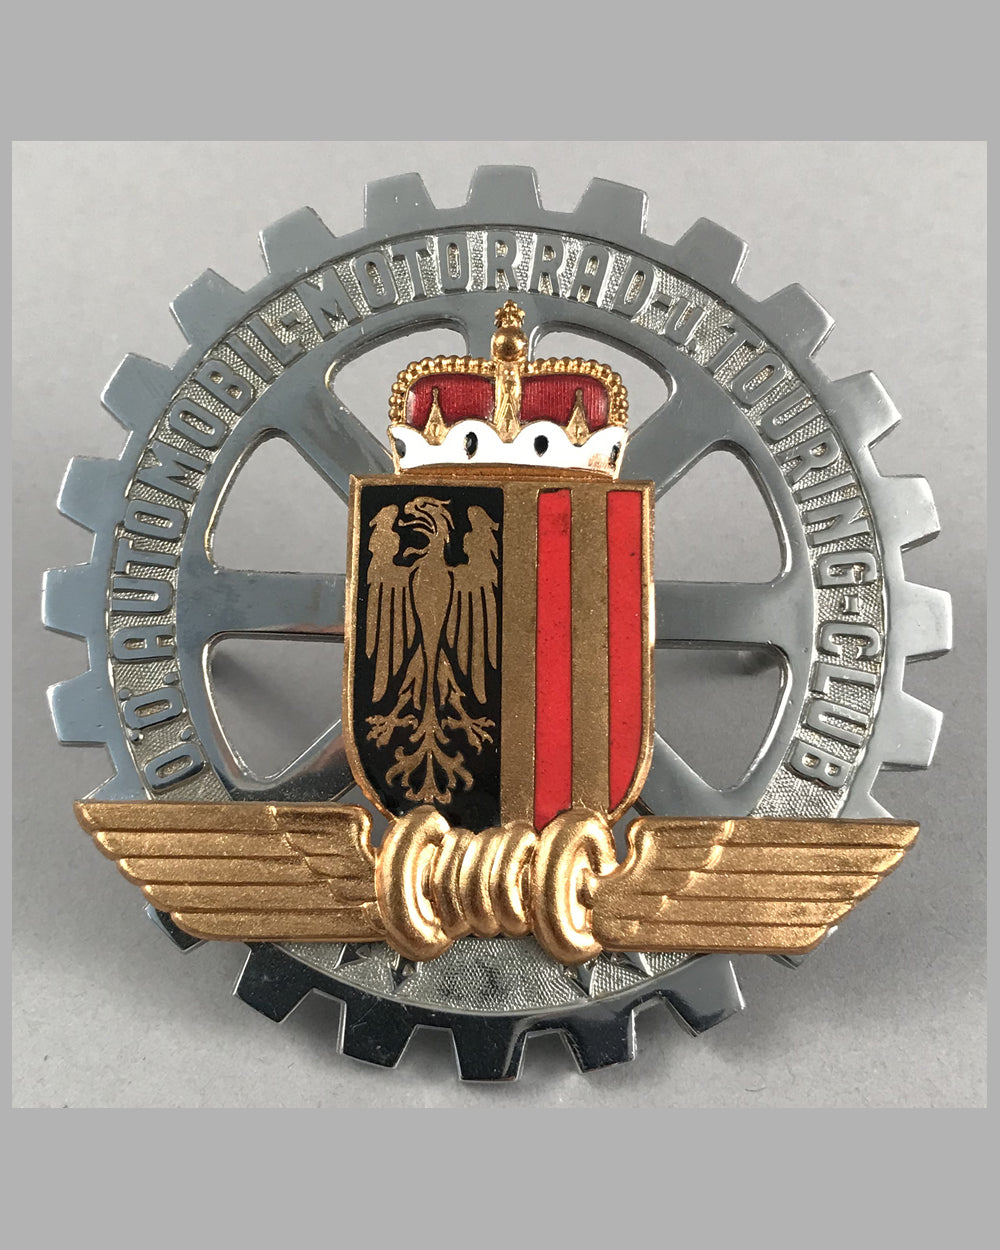 O.O. Automobil - Motorrad - u. Touring - Club (The Austrian Automobile, Motorcycle and touring club) grill badge